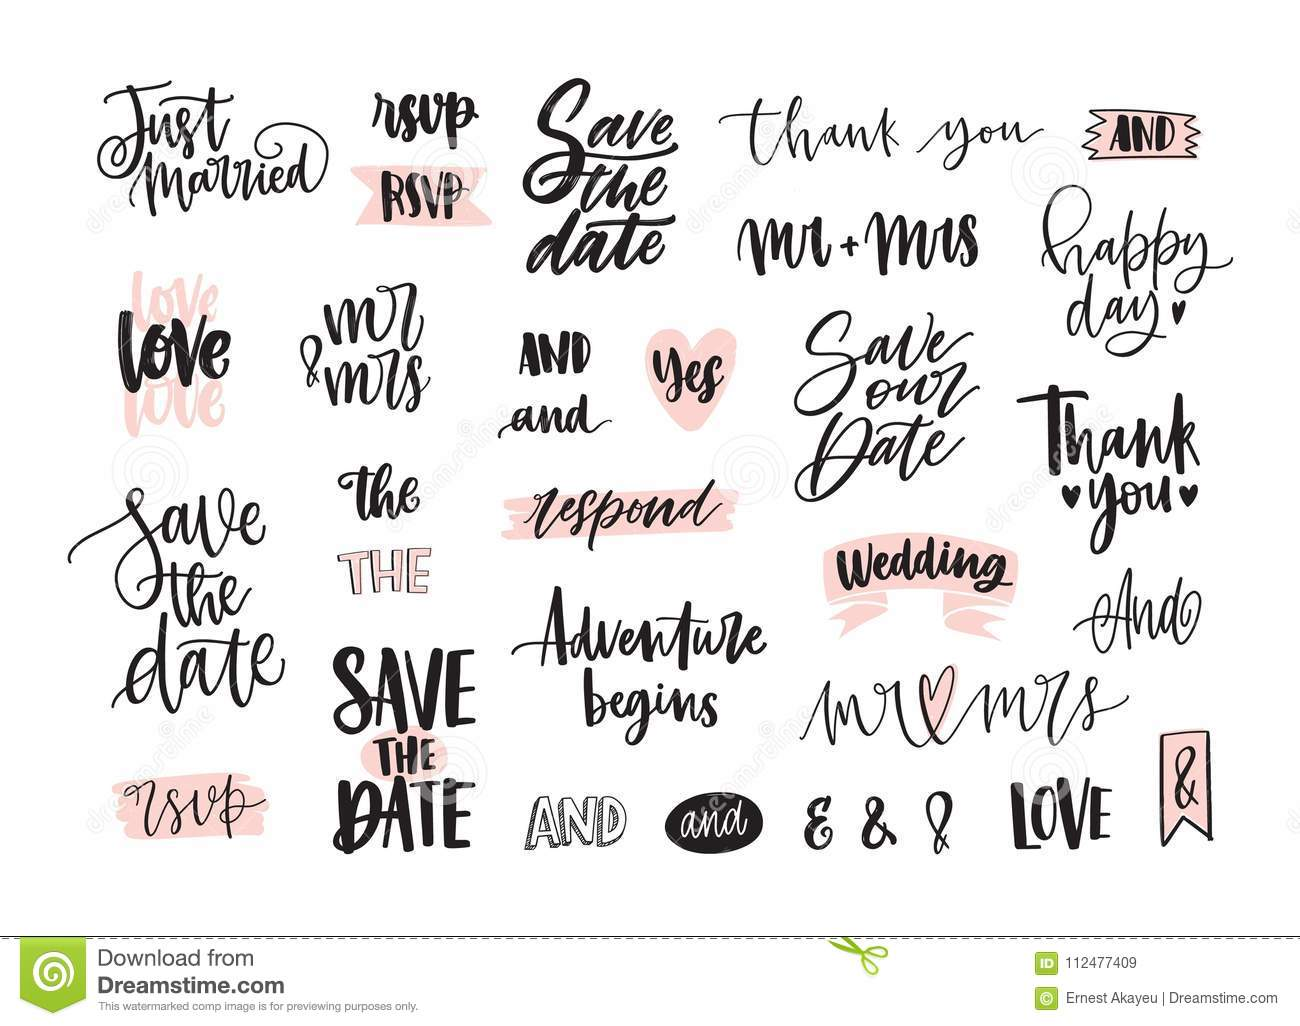 Set Of Creative Wedding Lettering Or Inscriptions Written With Decorative Calligraphic Font Bundle Of Phrases Words Stock Vector Illustration Of Romantic Creative 112477409